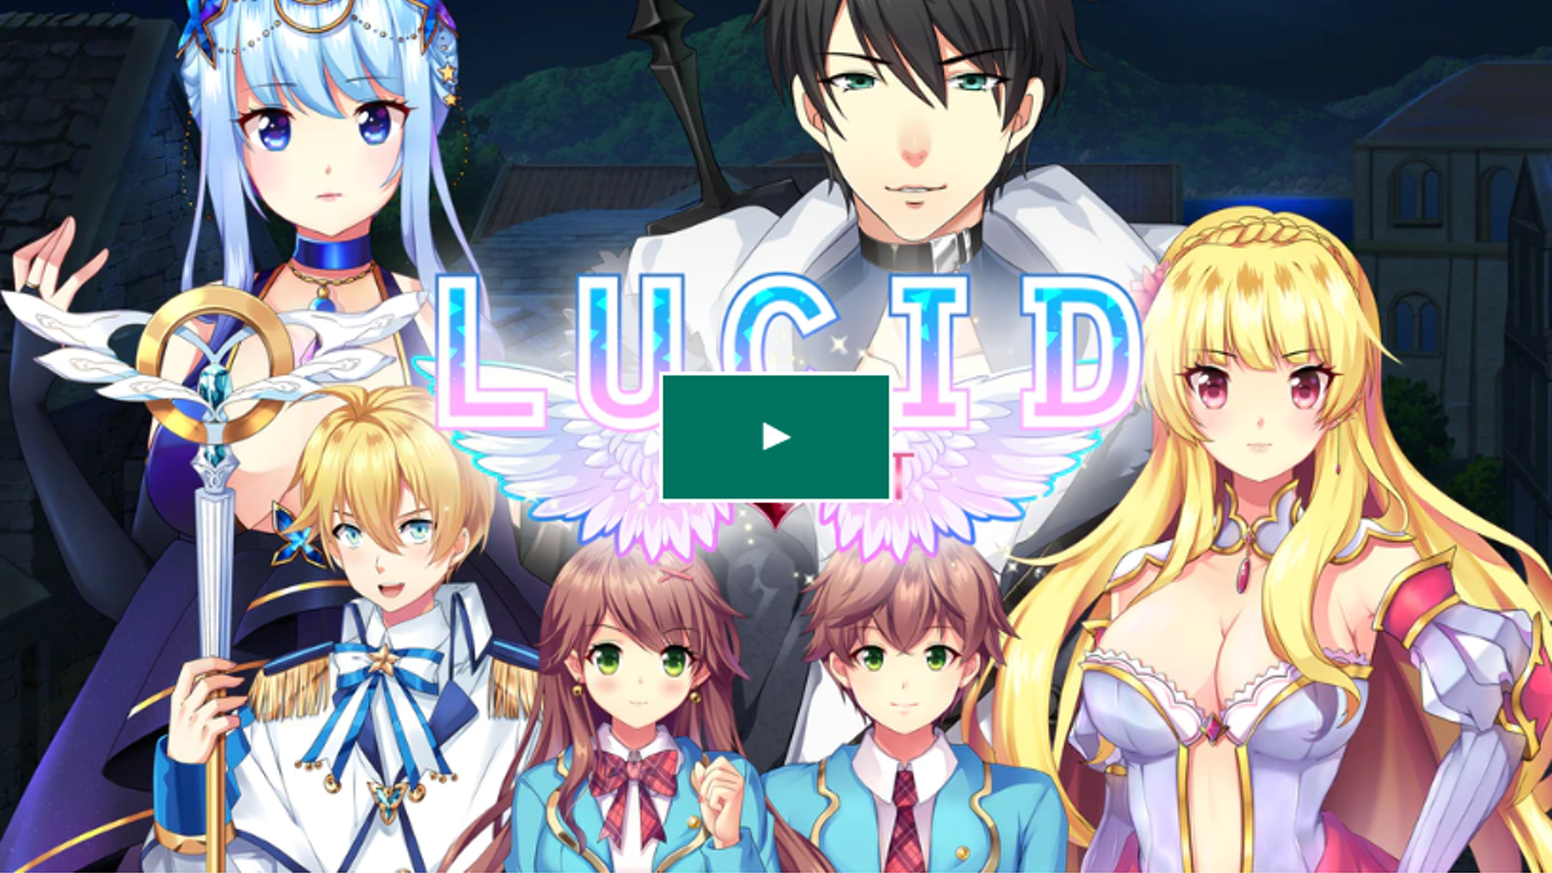 A Visual Novel/JRPG for both men and woman with a bisexual romance system and alternate paths/endings.